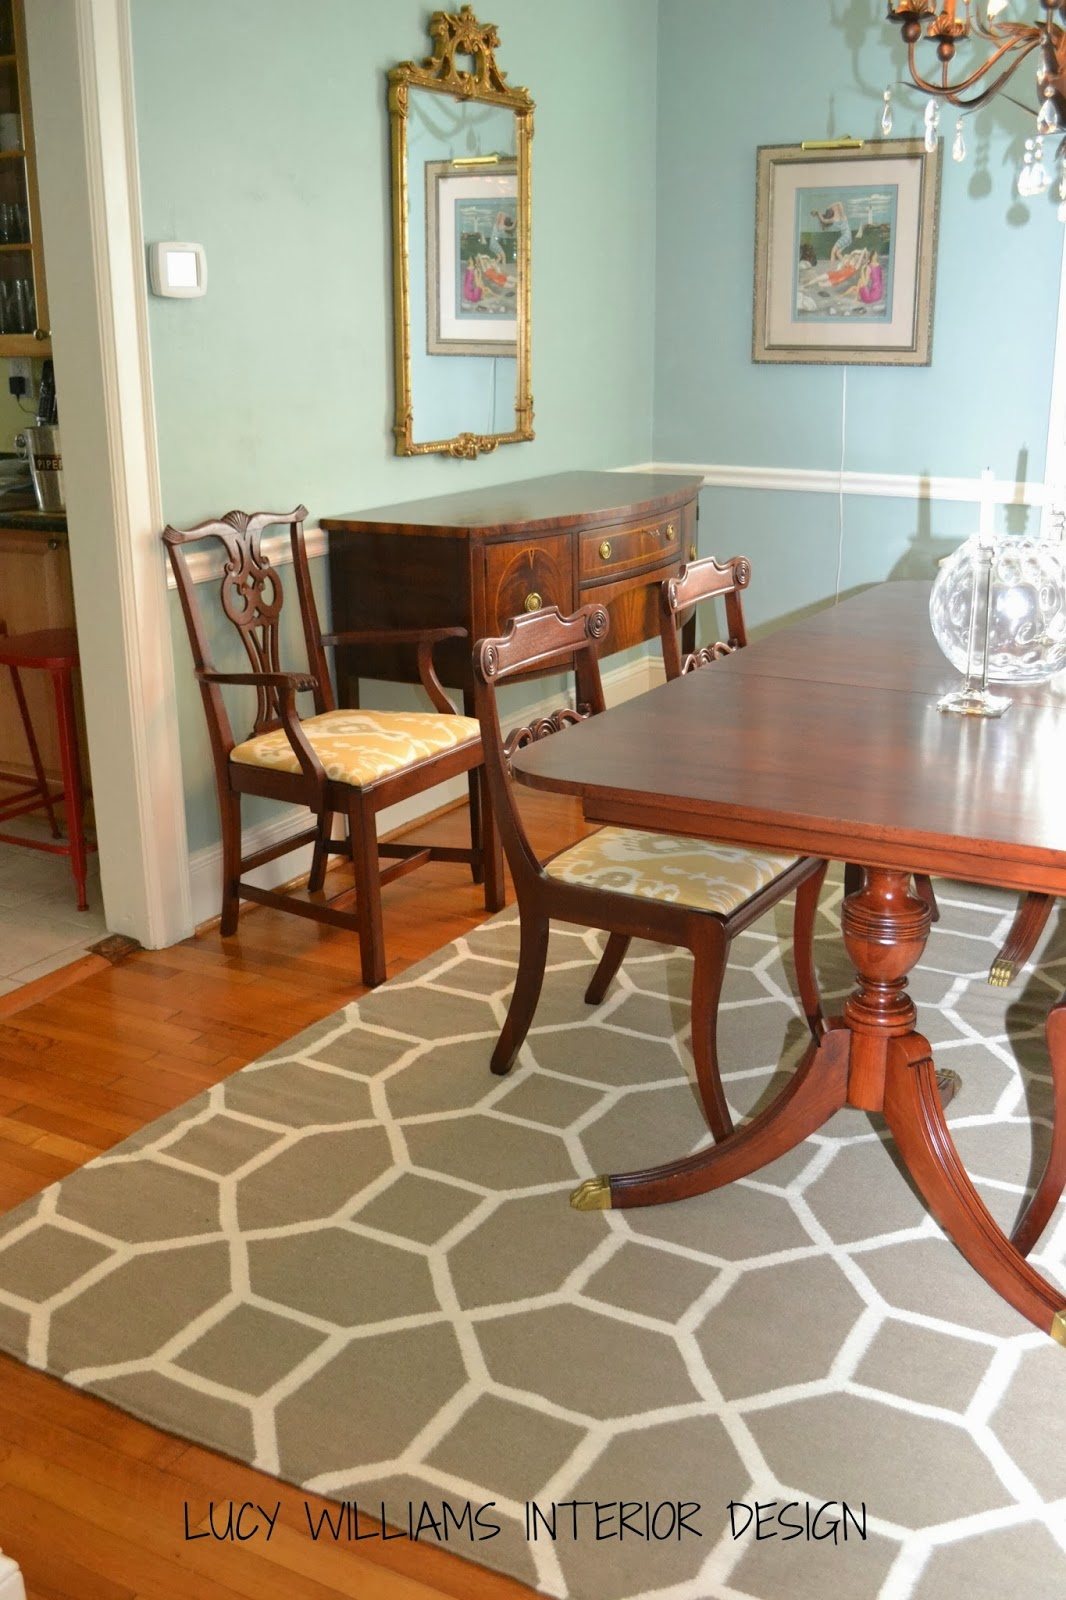 lucy williams interior design blog before and after dining room rug. Black Bedroom Furniture Sets. Home Design Ideas